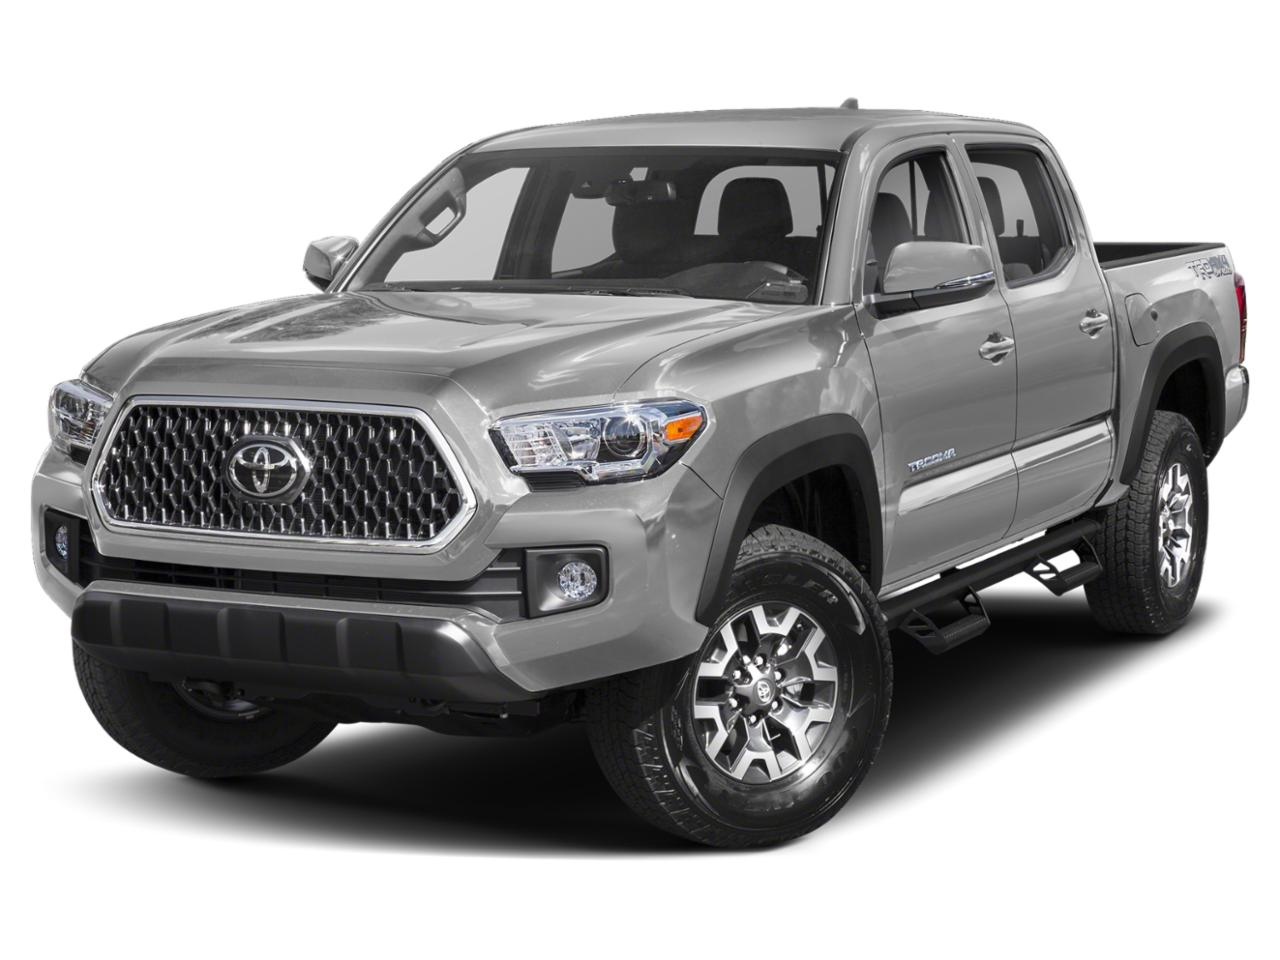 2019 Toyota Tacoma 4WD Vehicle Photo in Muncy, PA 17756